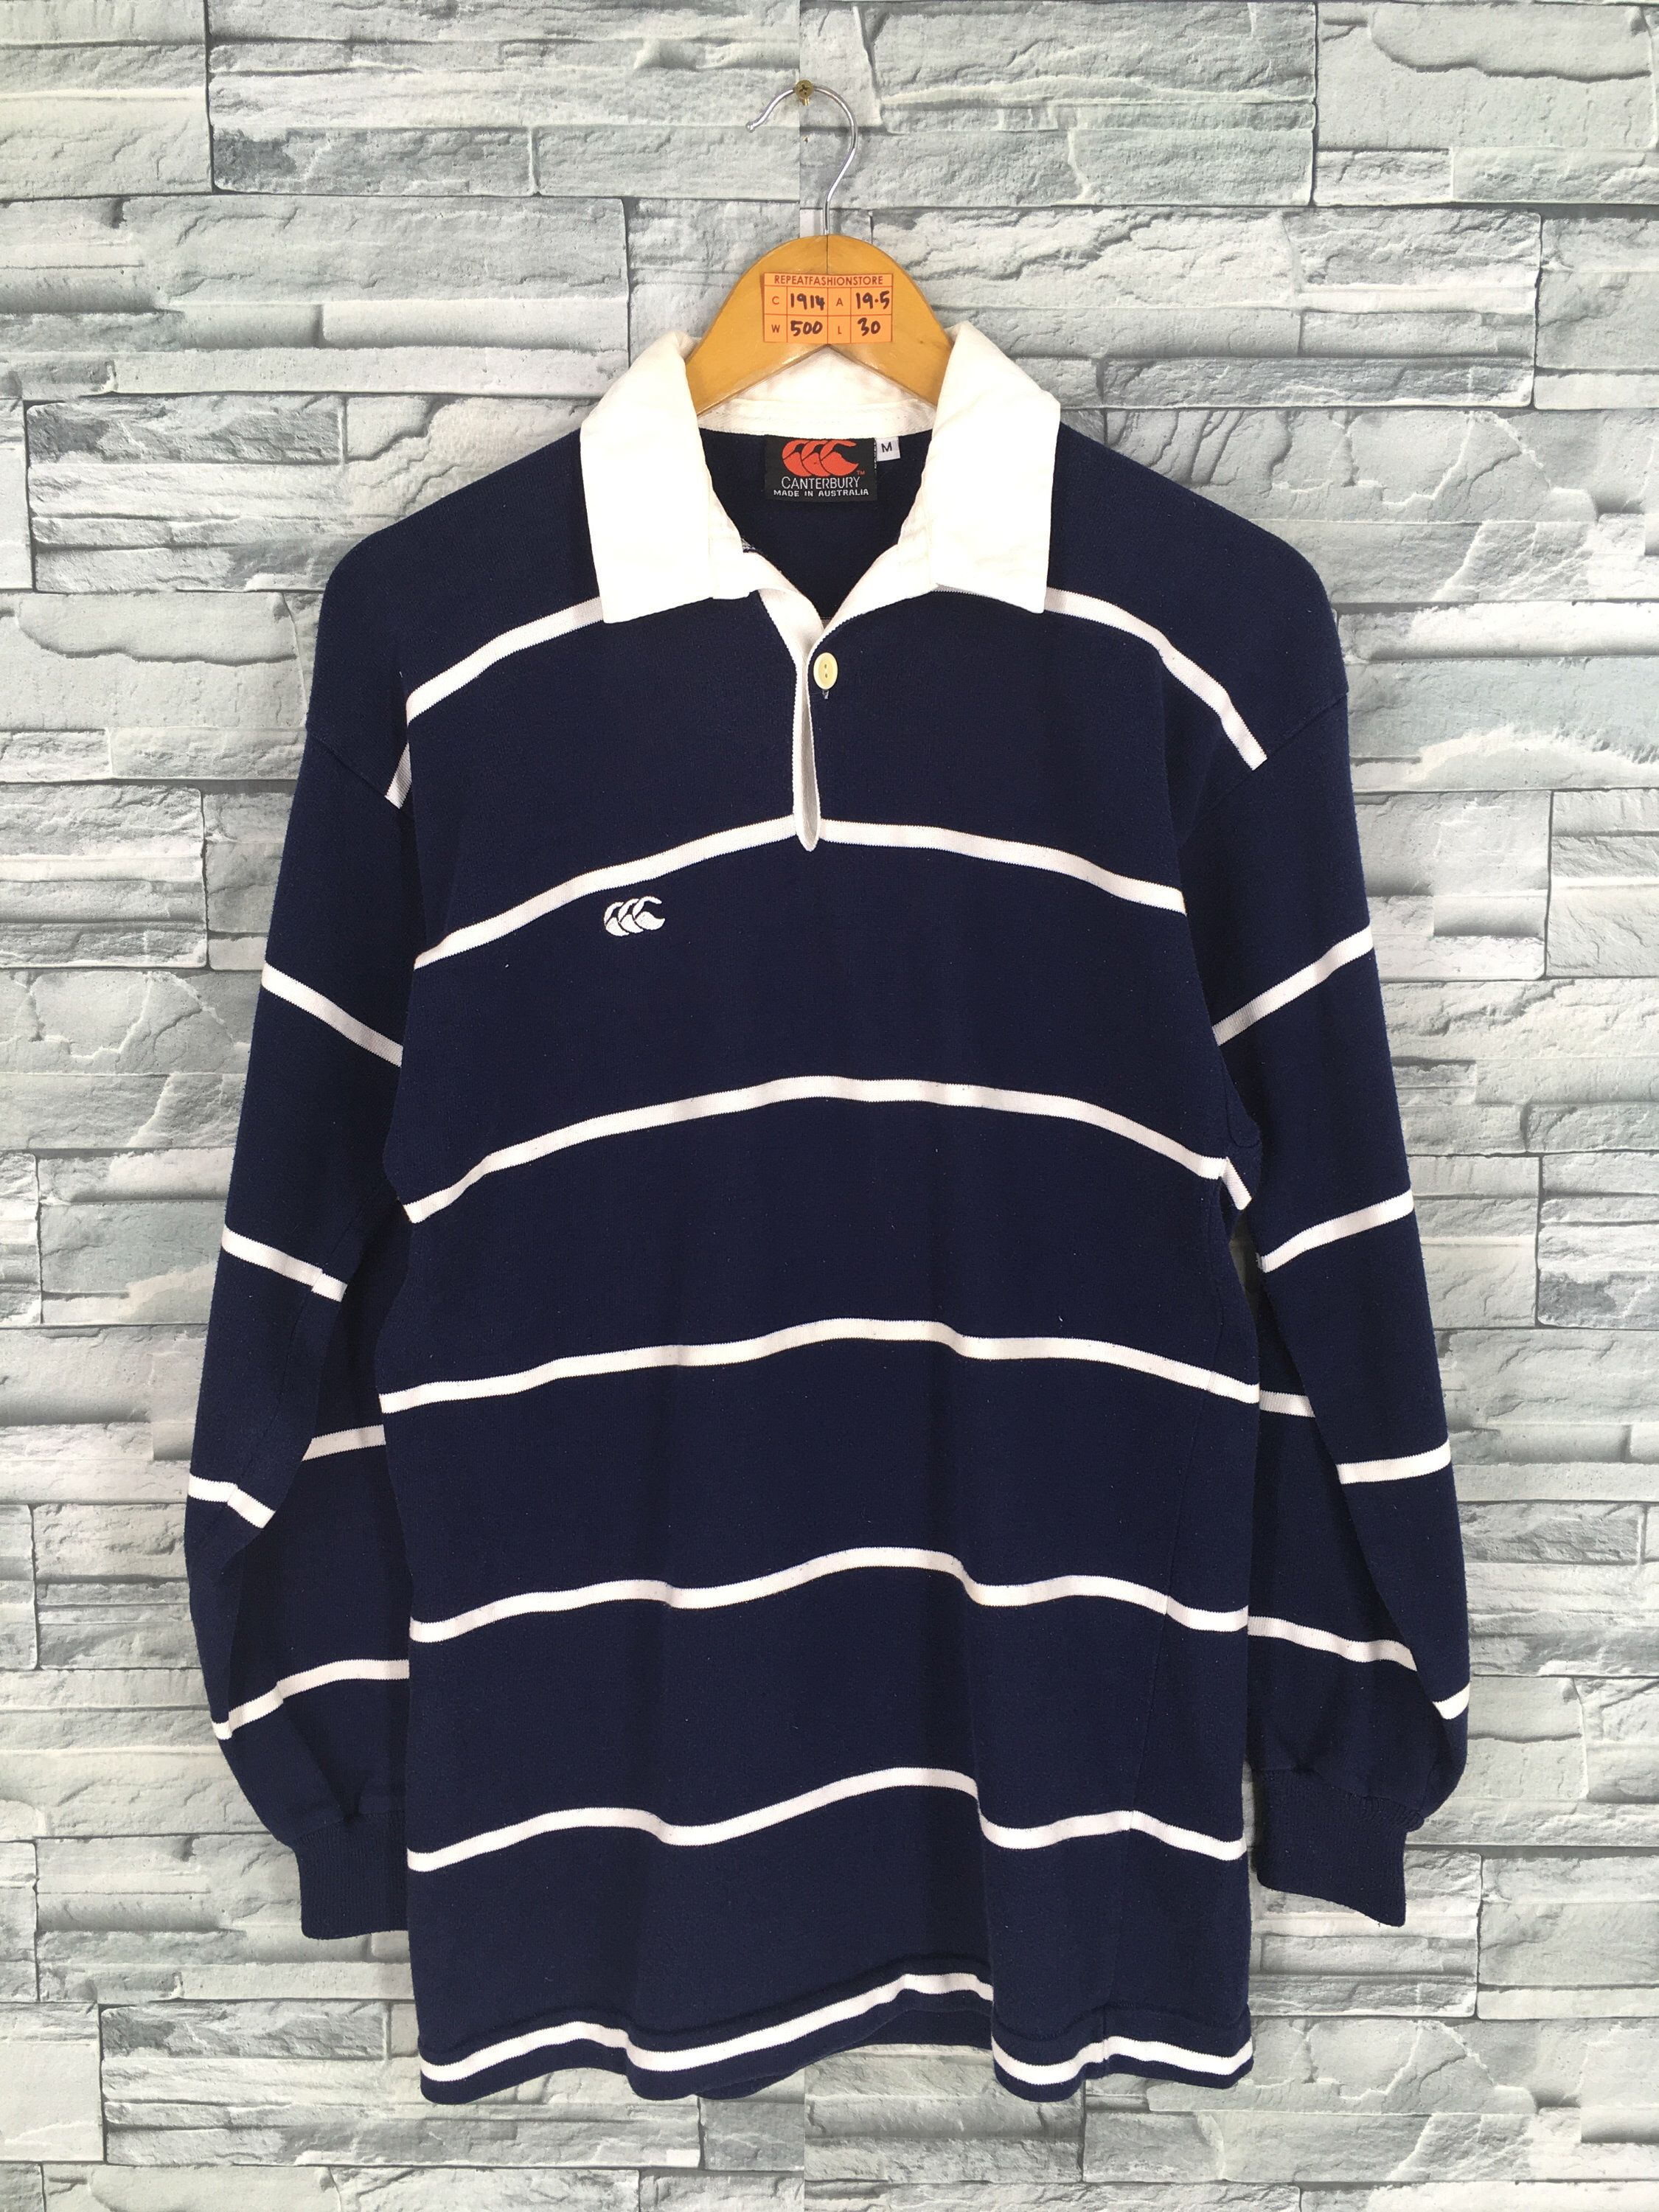 Predownload: Excited To Share The Latest Addition To My Etsy Shop Canterbury Of New Zealand Polo Rugby Shirt Me Blue And White Shirt Canterbury Of New Zealand Rugby Shirt [ 3000 x 2250 Pixel ]